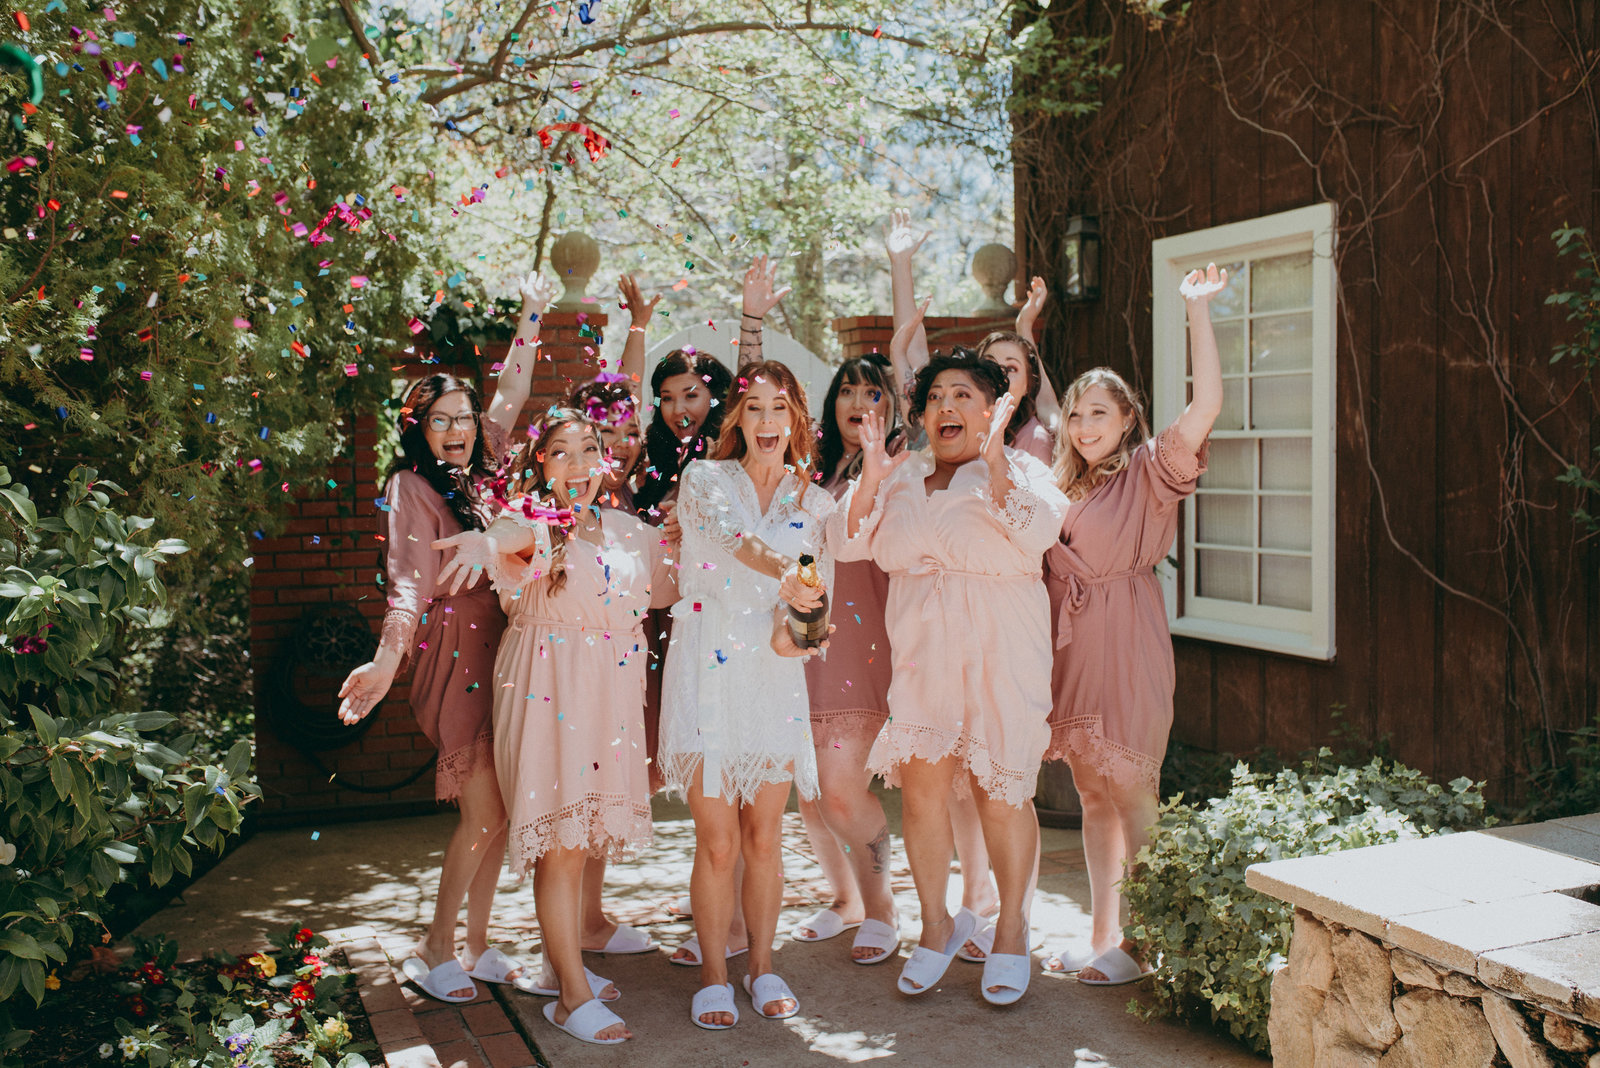 Portrait of the Bridal party celebrating